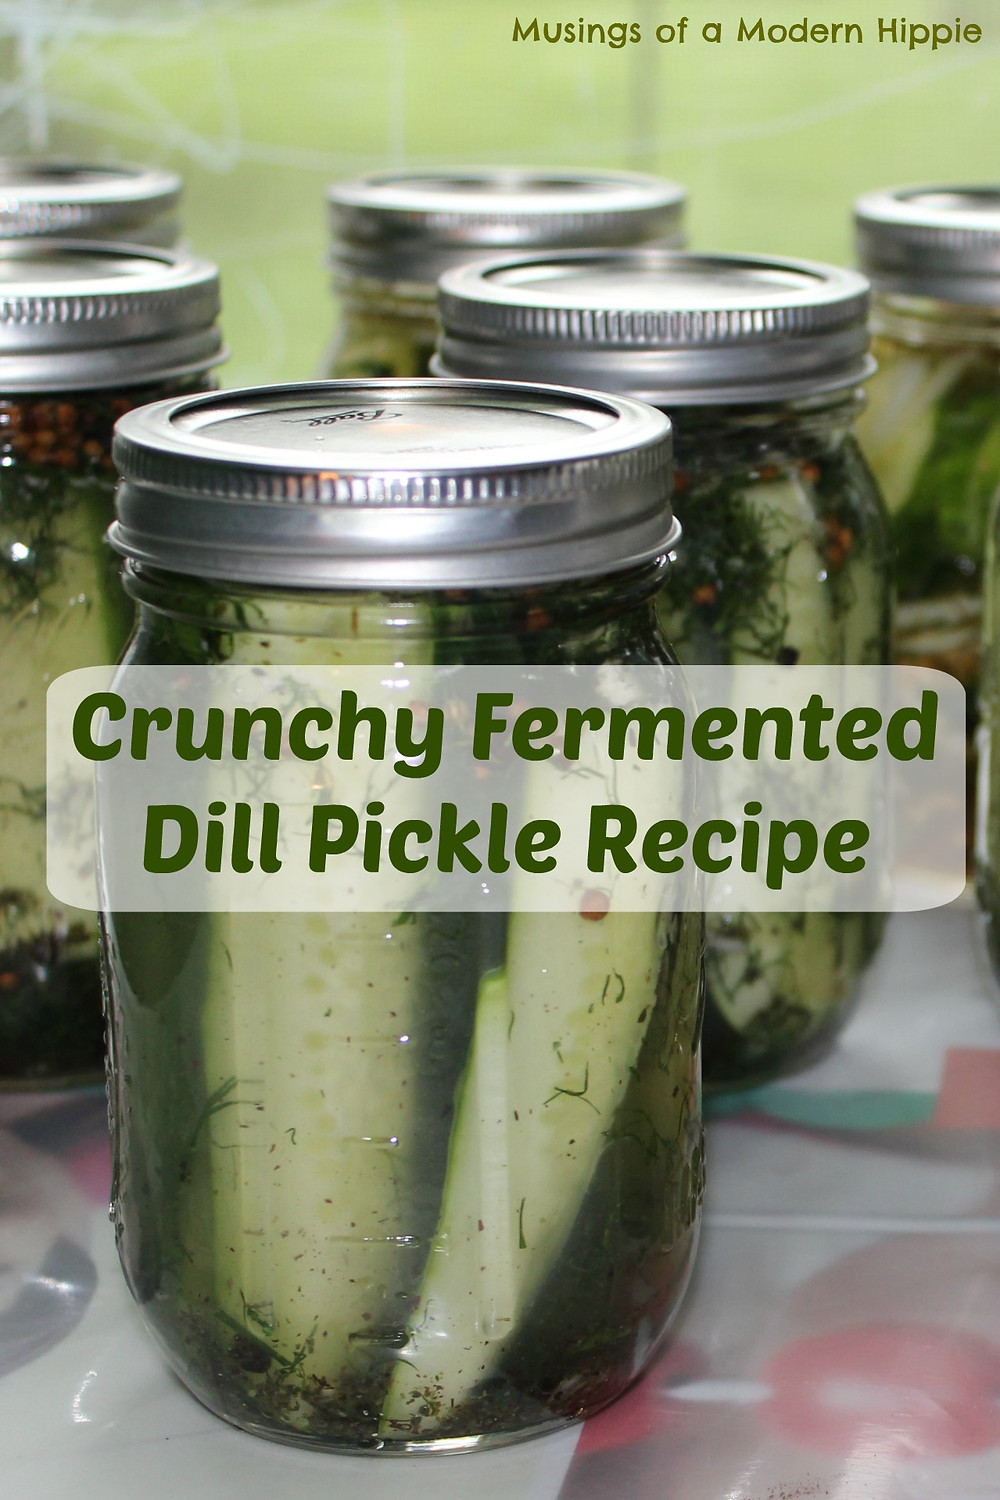 Crunchy Fermented Dill Pickles | Musings of a Modern Hippie